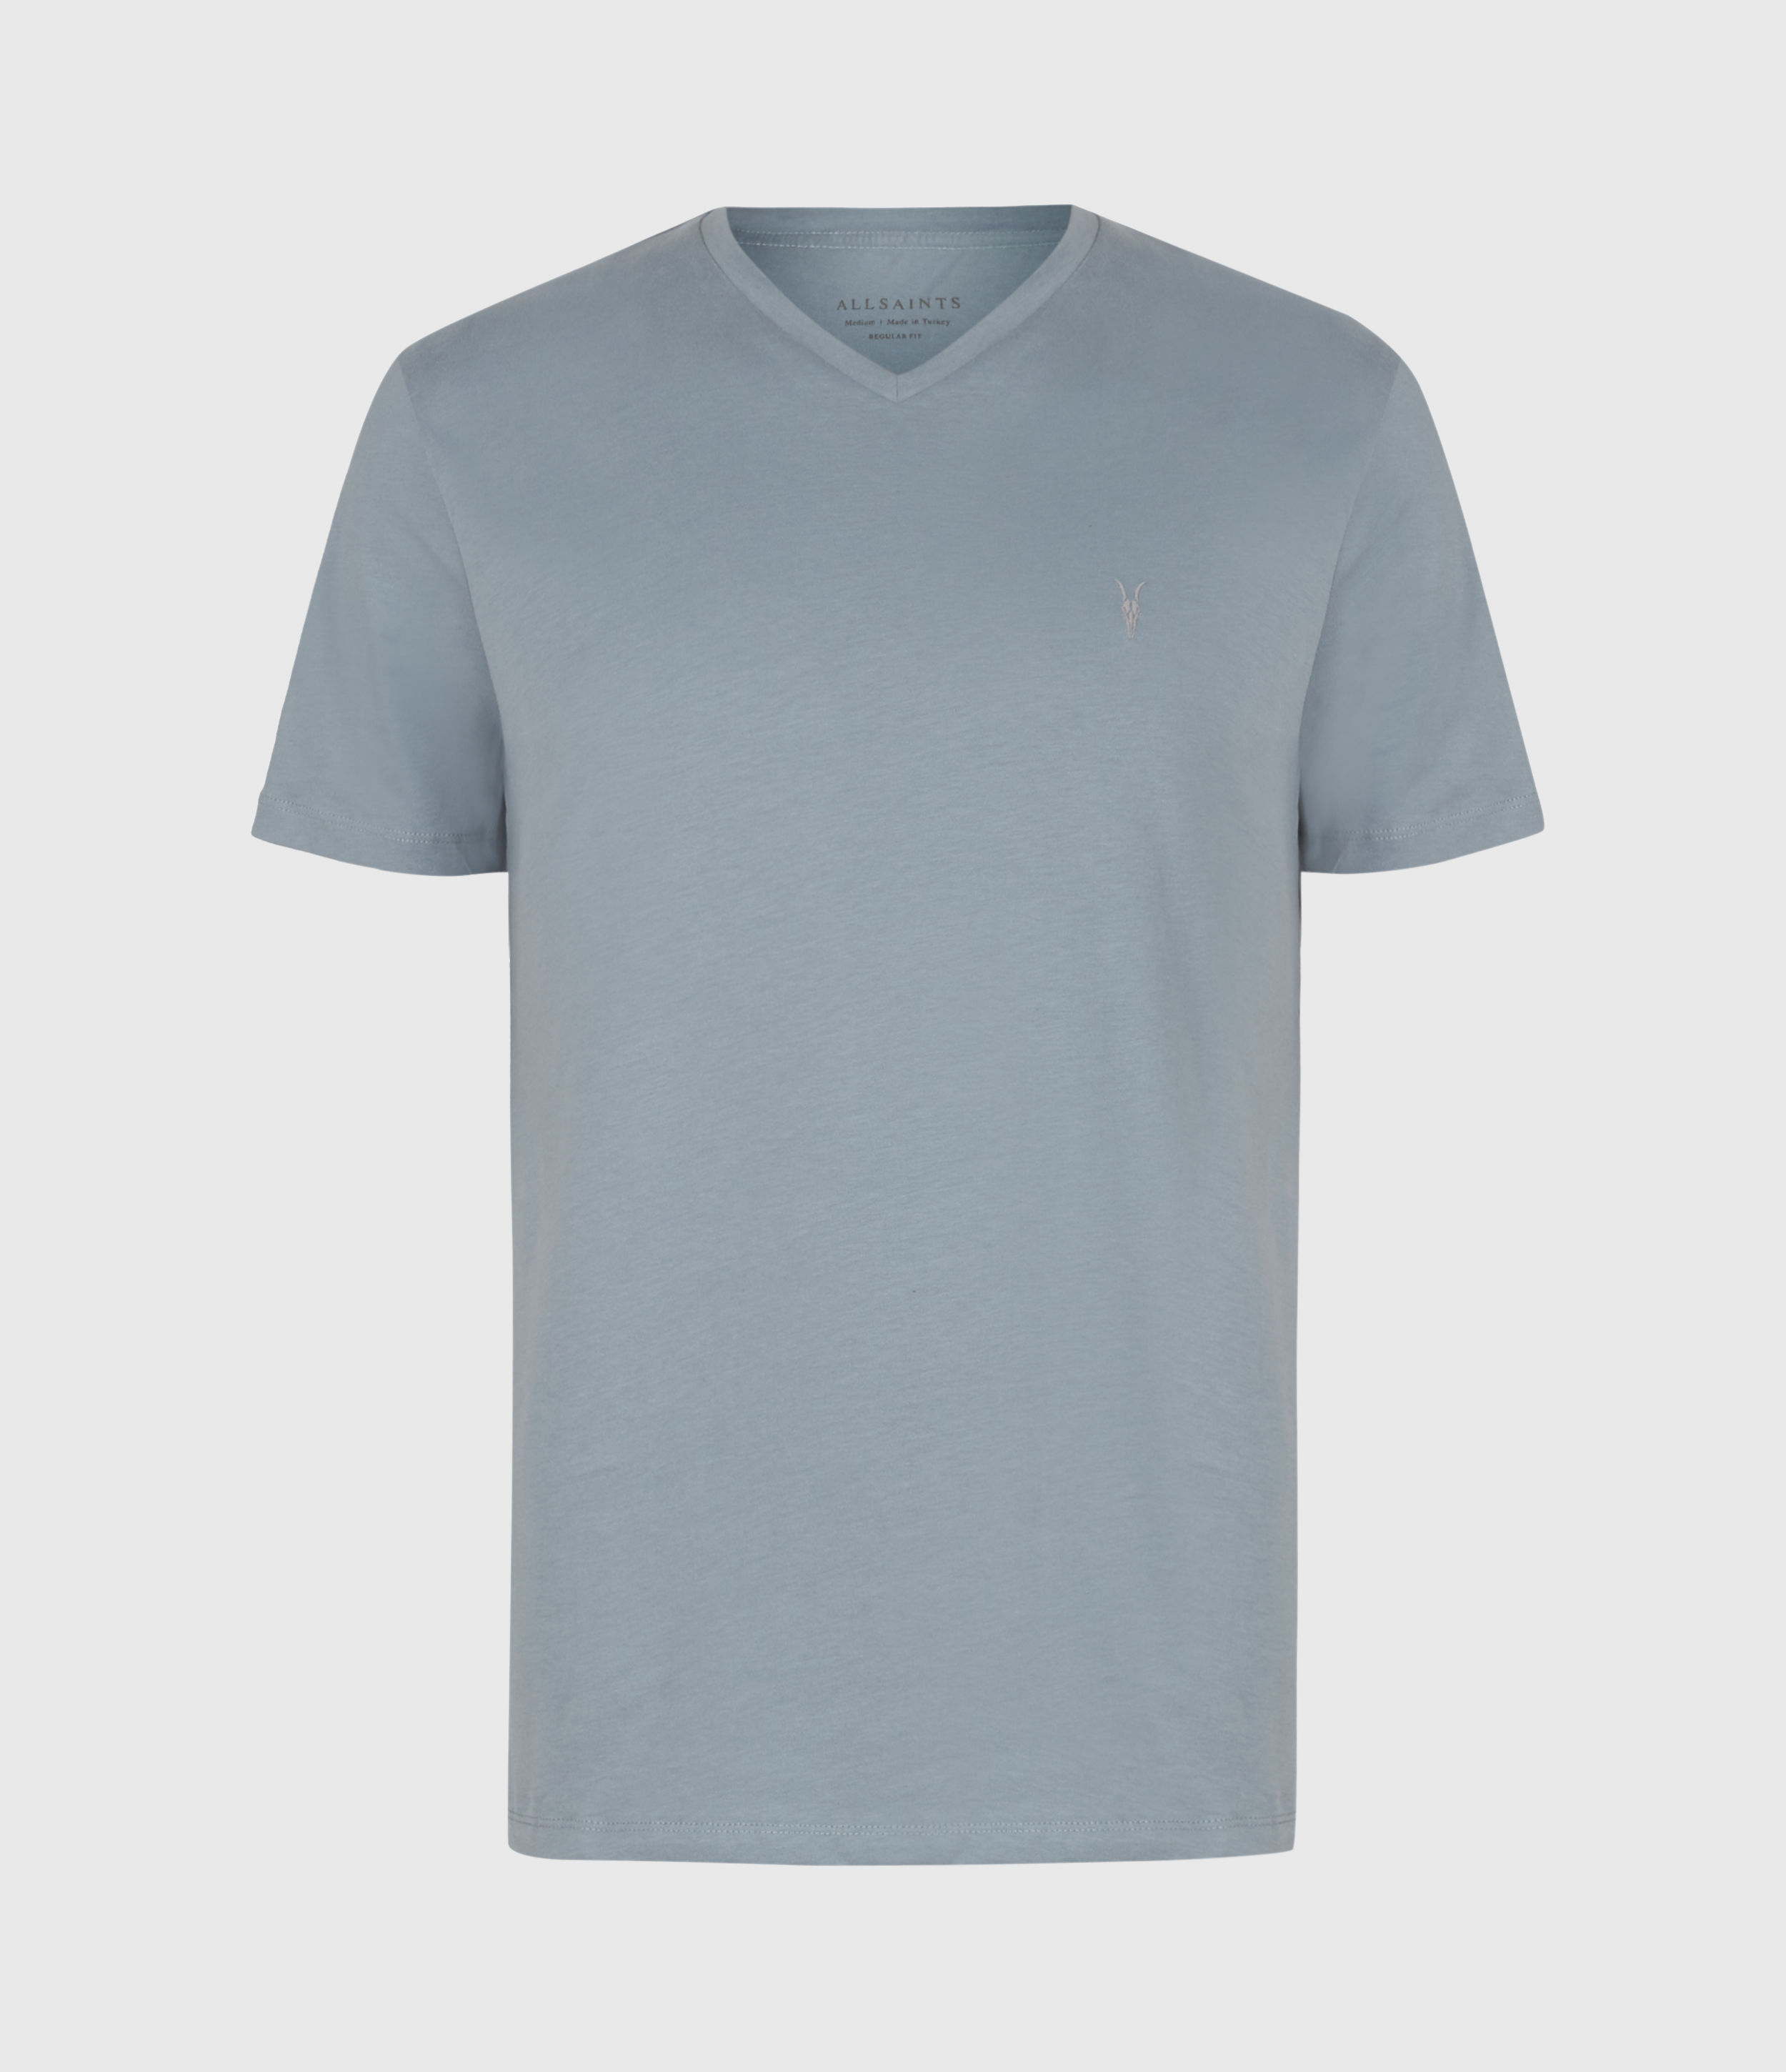 AllSaints Mens Brace V Neck, Force Blue, Size: M